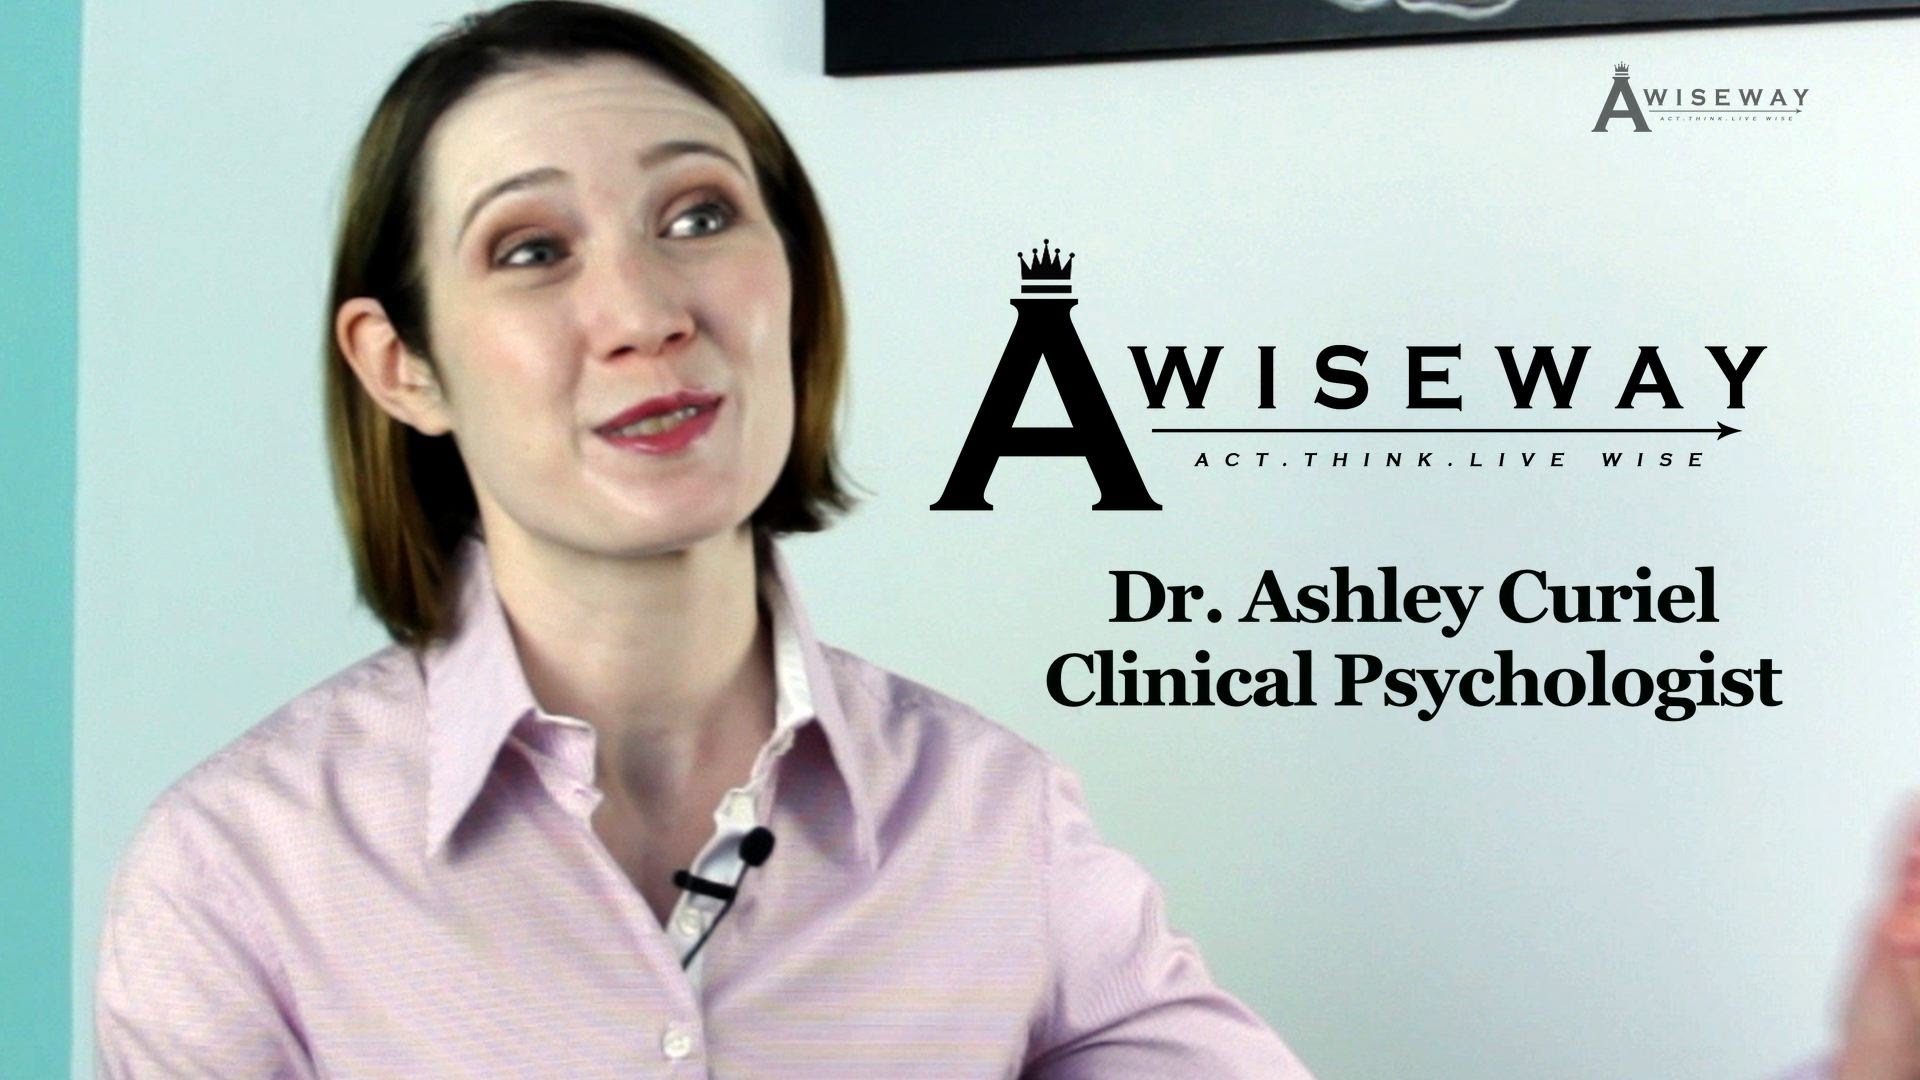 How Do I Know If I Should See a Psychologist?